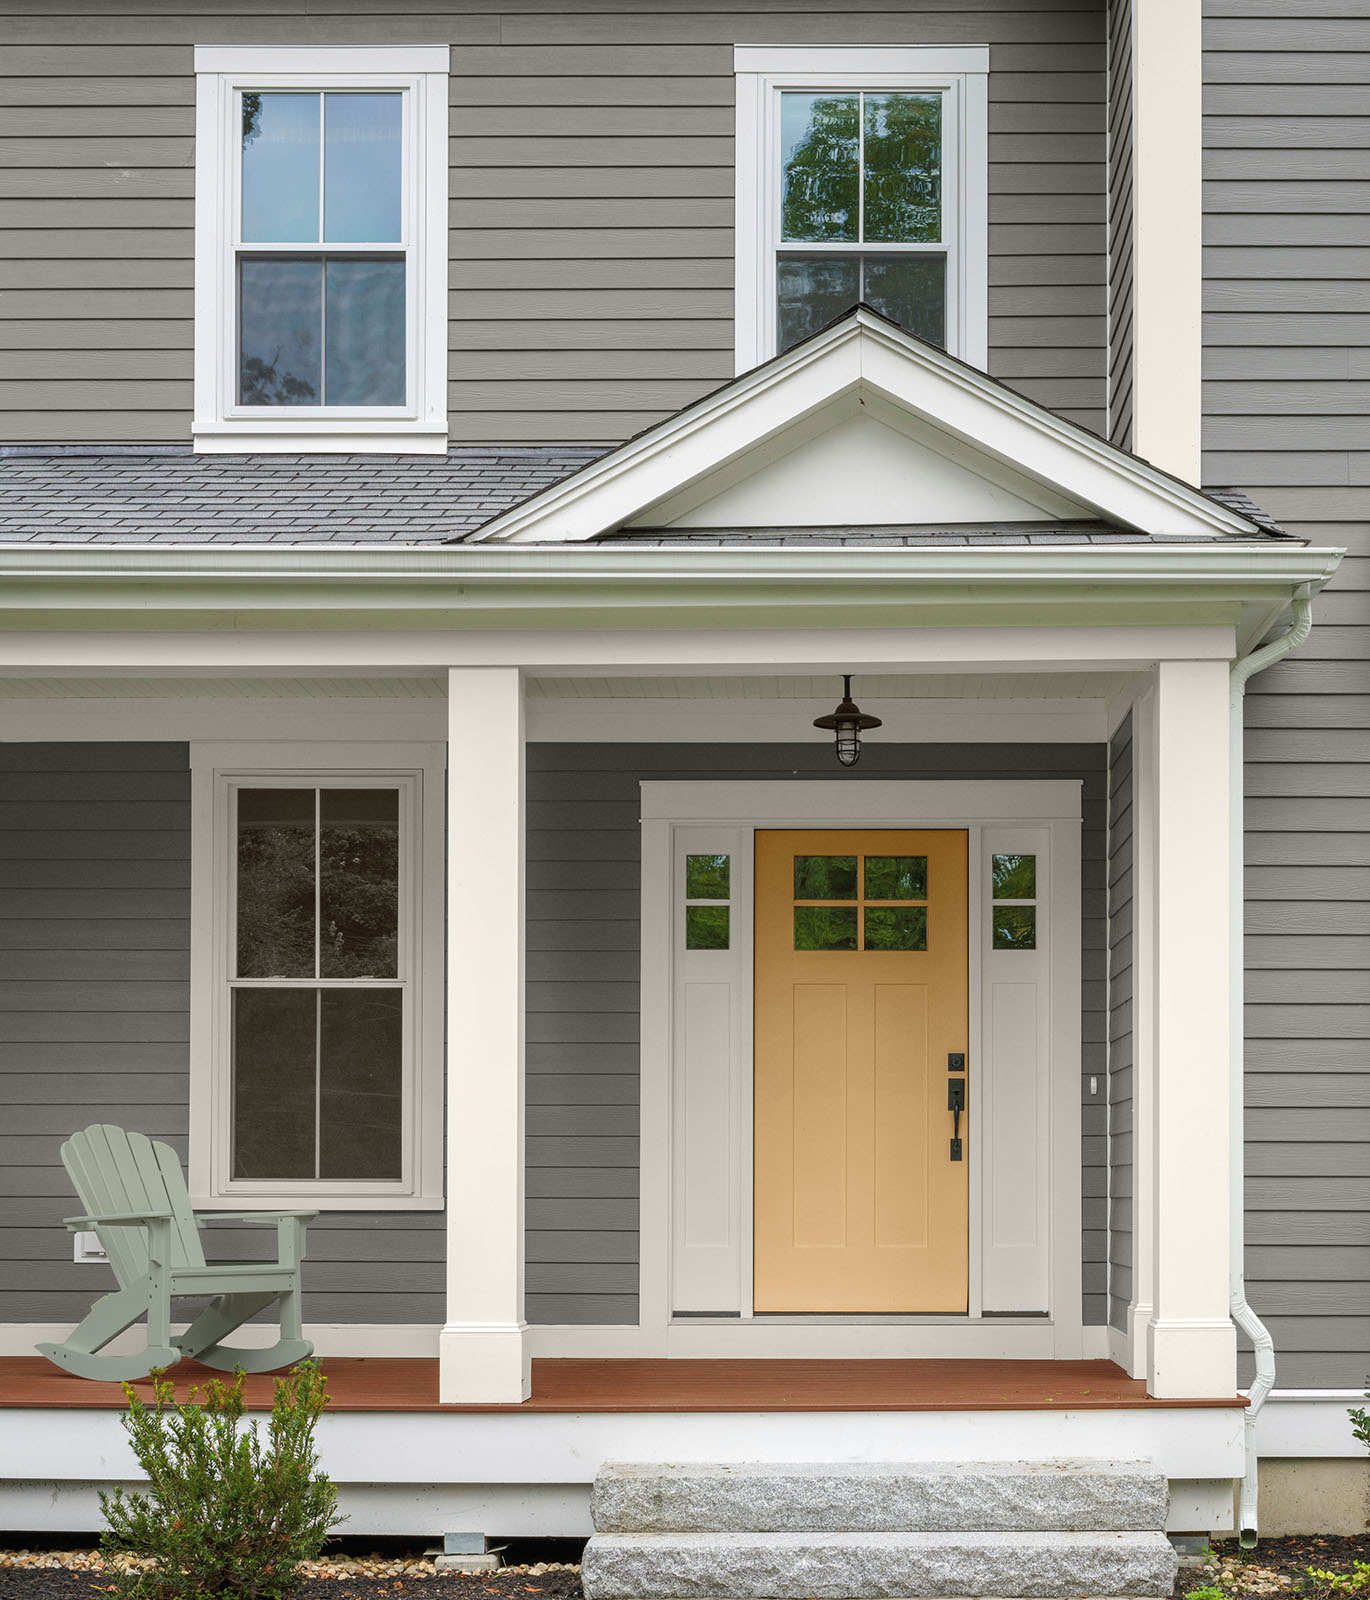 An exterior home painted in a gray color with a yellow front door.